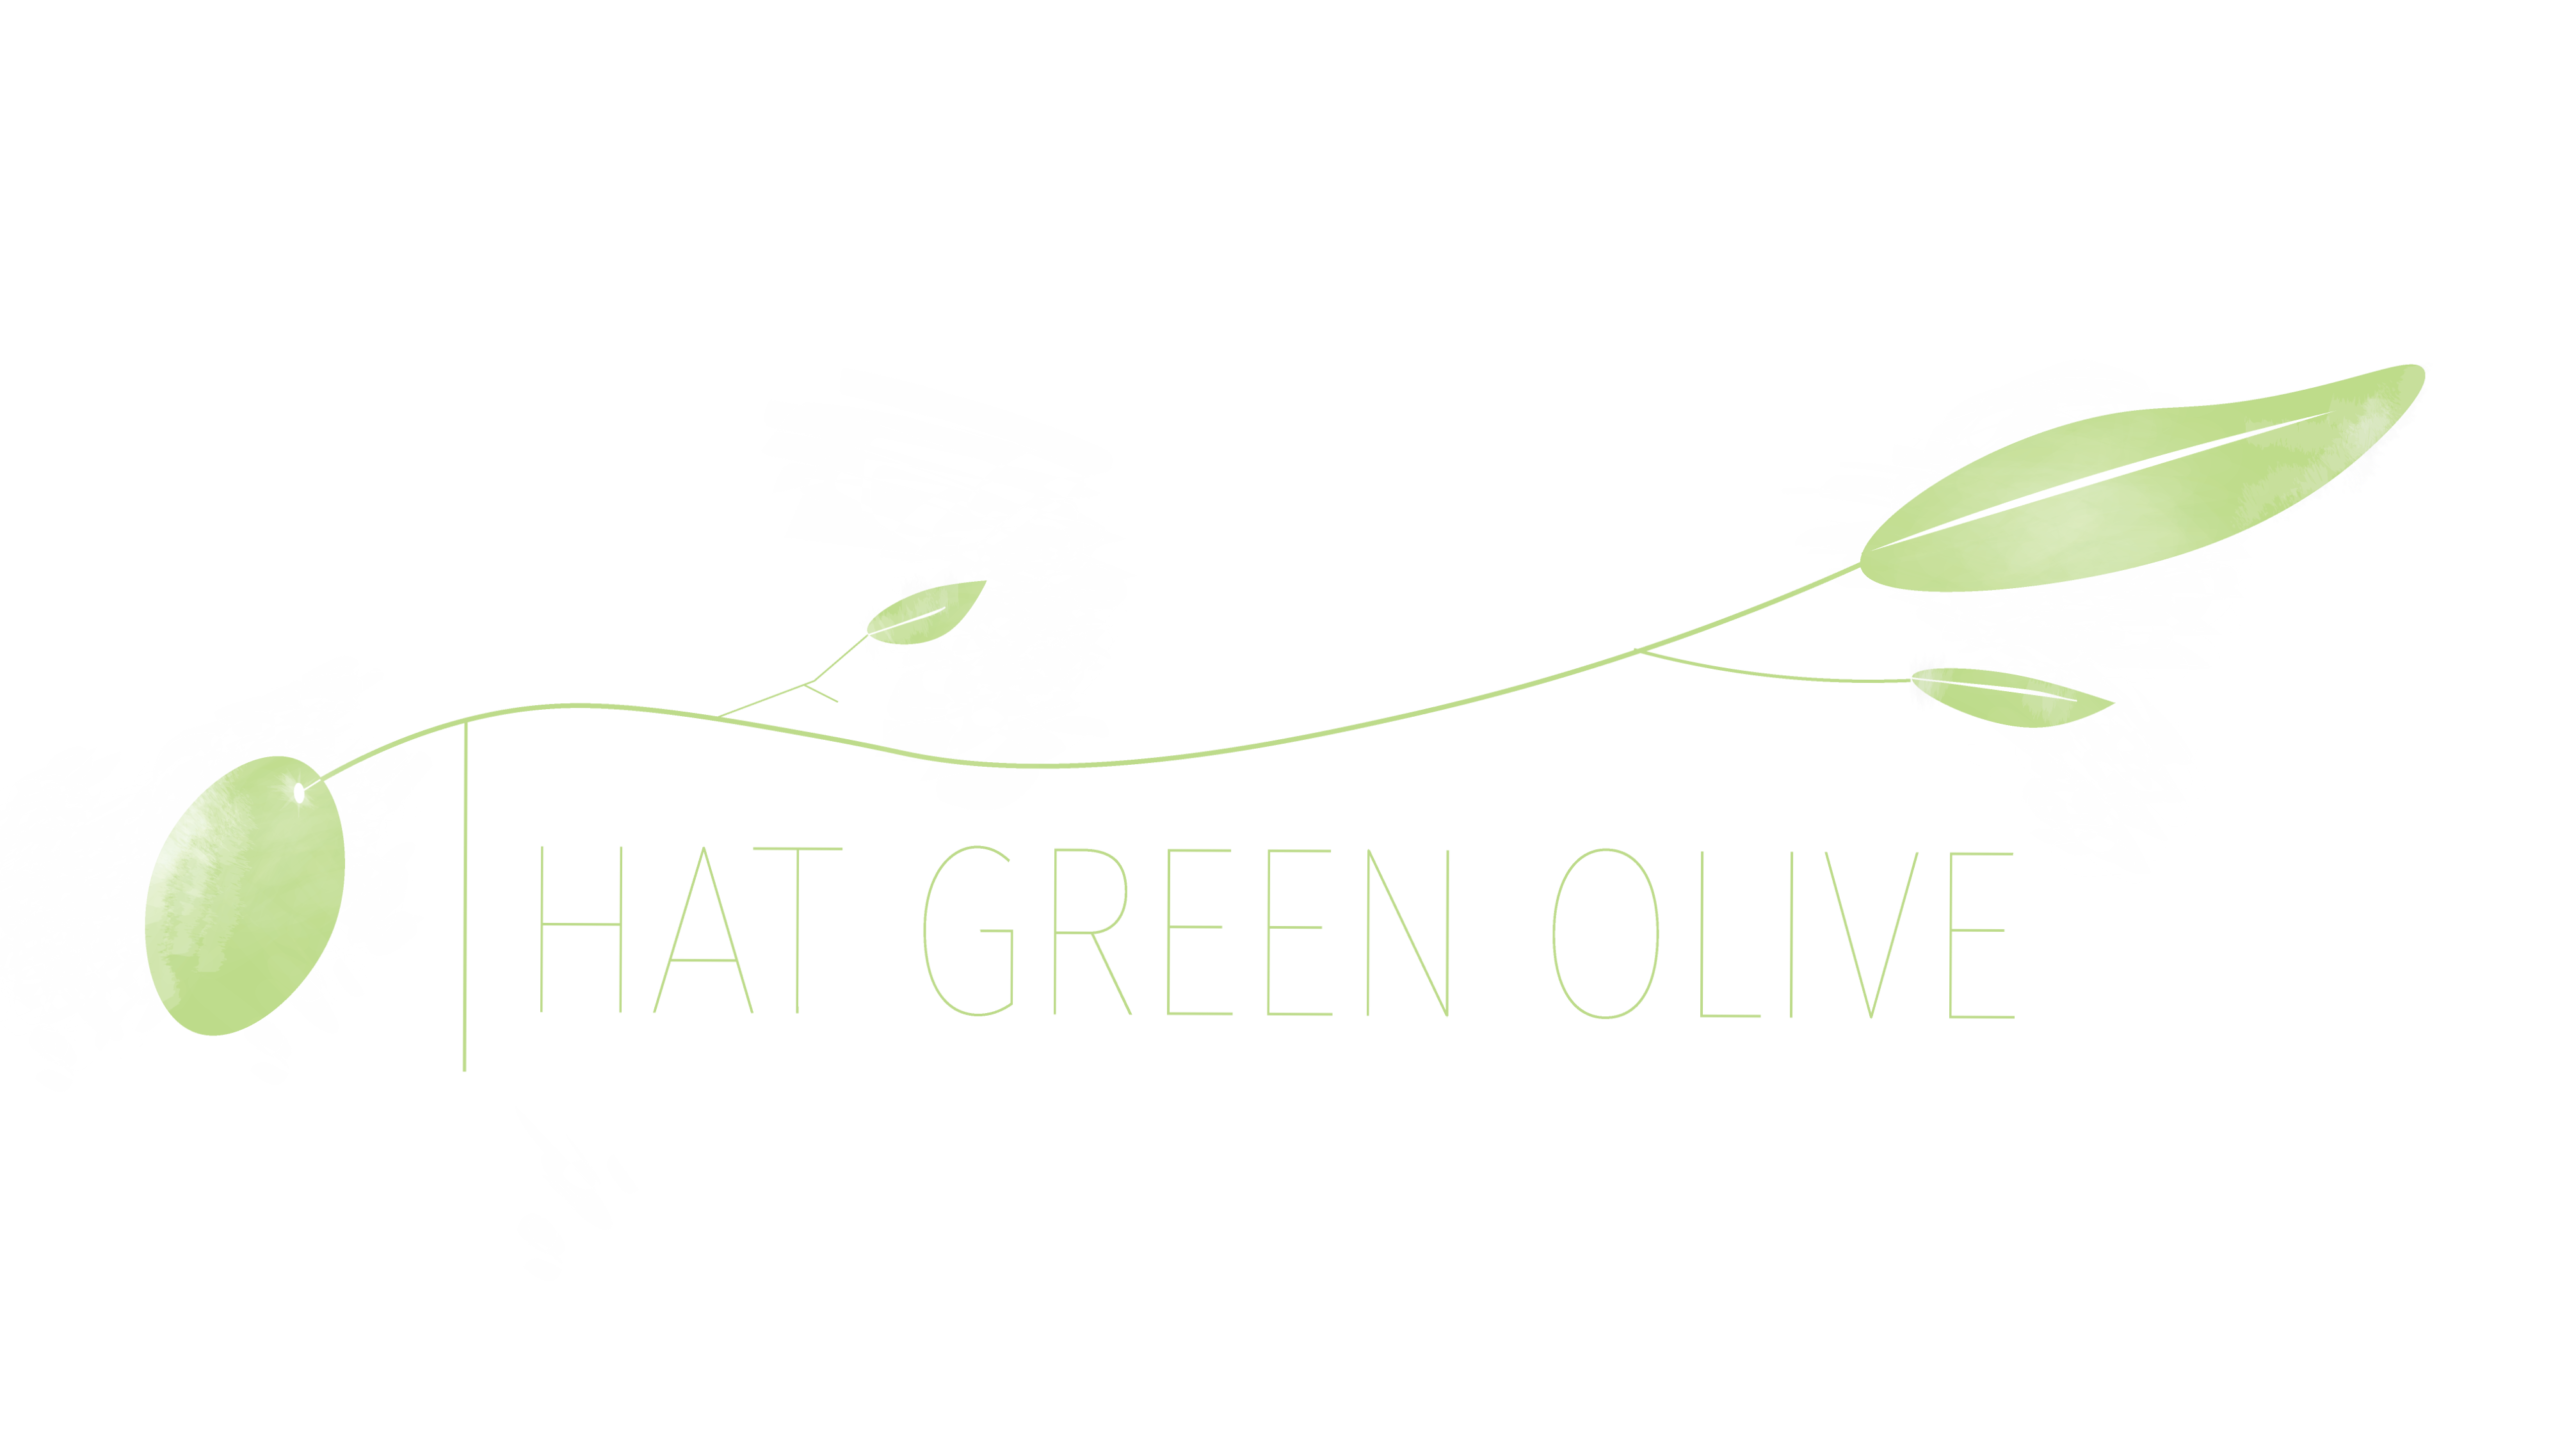 That Green Olive